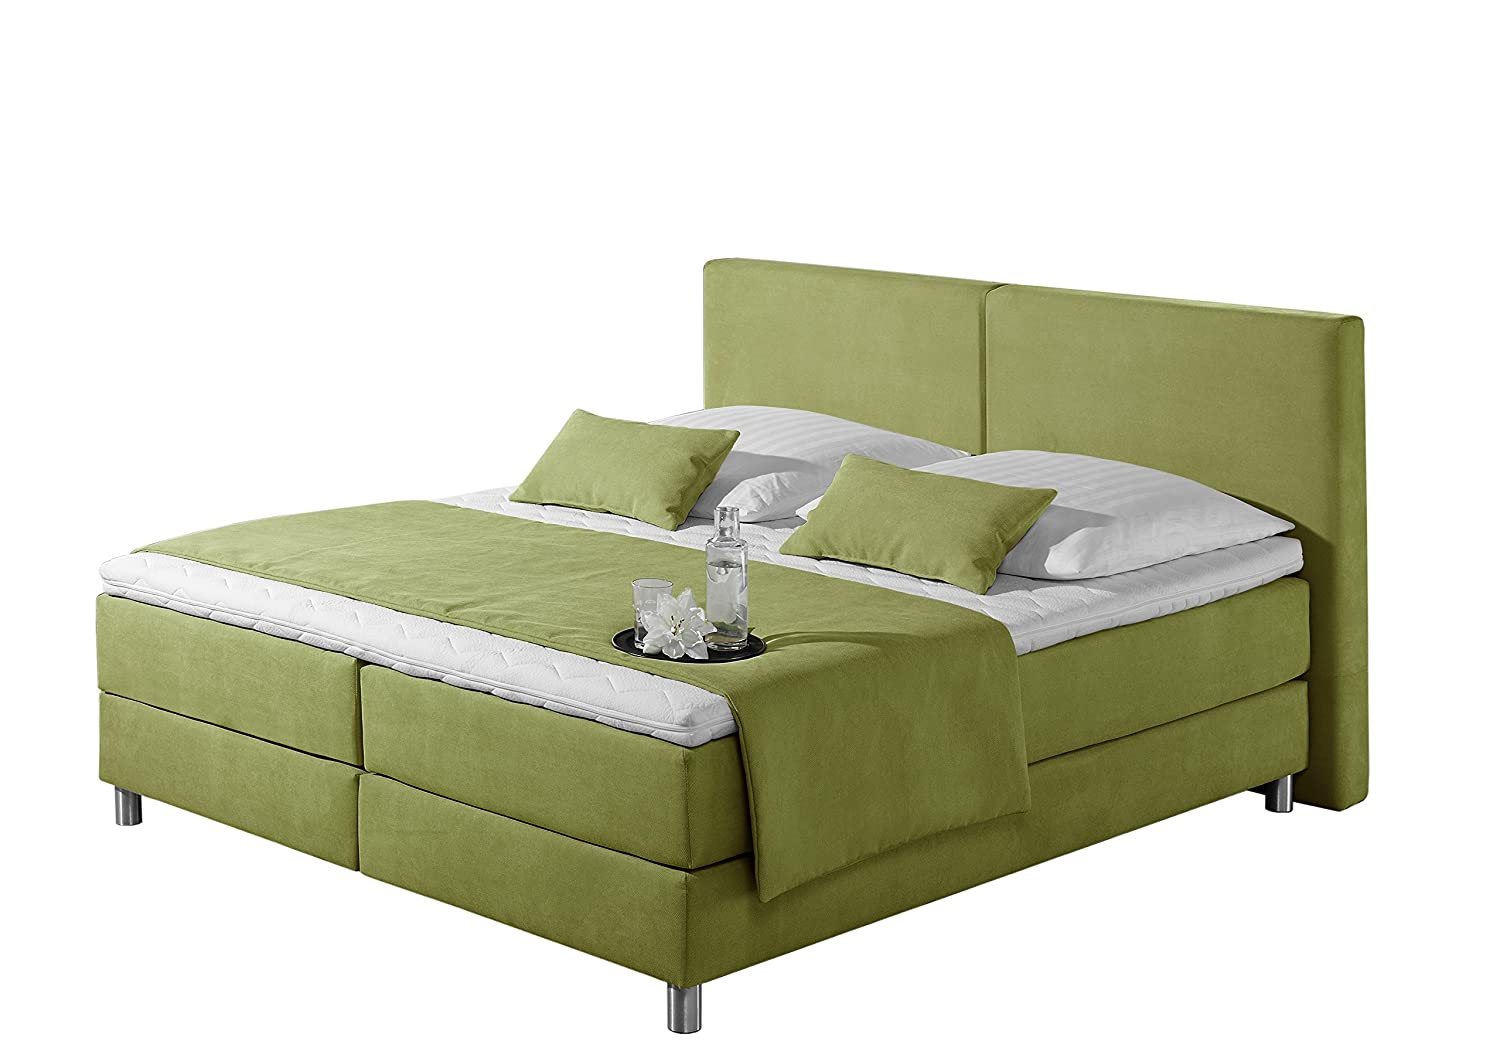 Maintal Betten 237405-4173 Boxspringbett Metropol 180 x 200 cm, Strukturstoff lemon